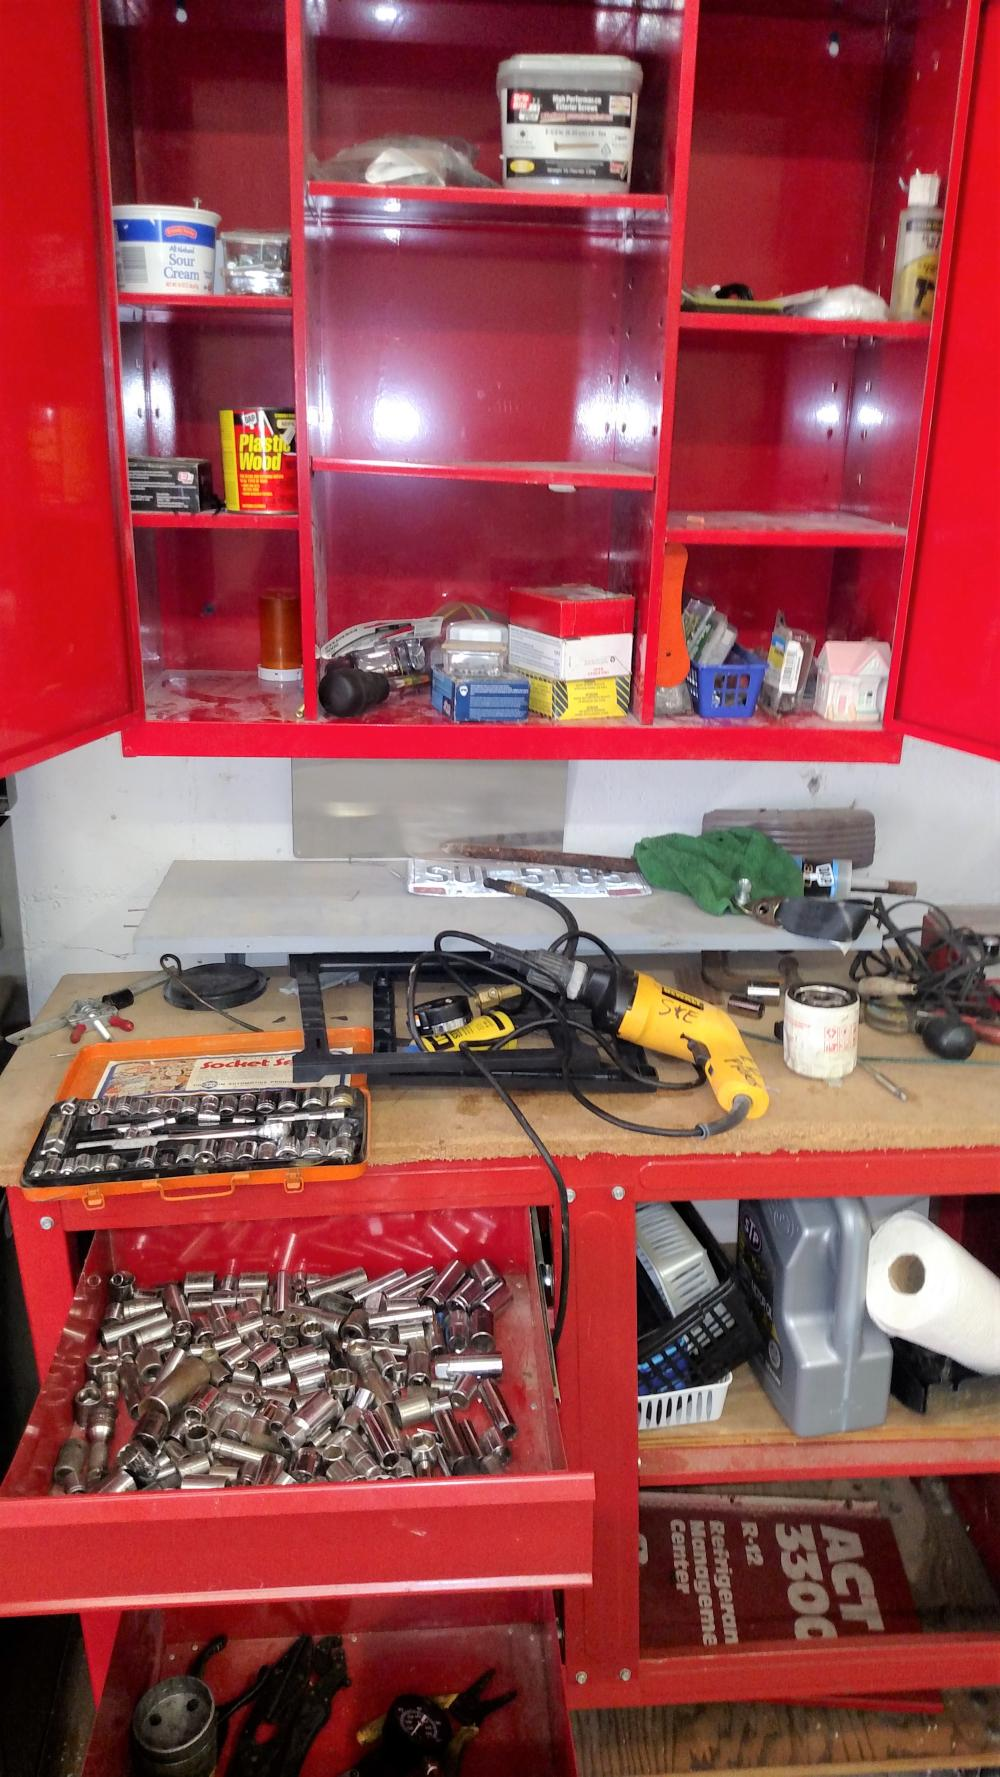 red tool box contents (top and bottem)-- sockets, screwdrivers, dewalt drywall drill, nails, screws, nuts & bolts-- contents only